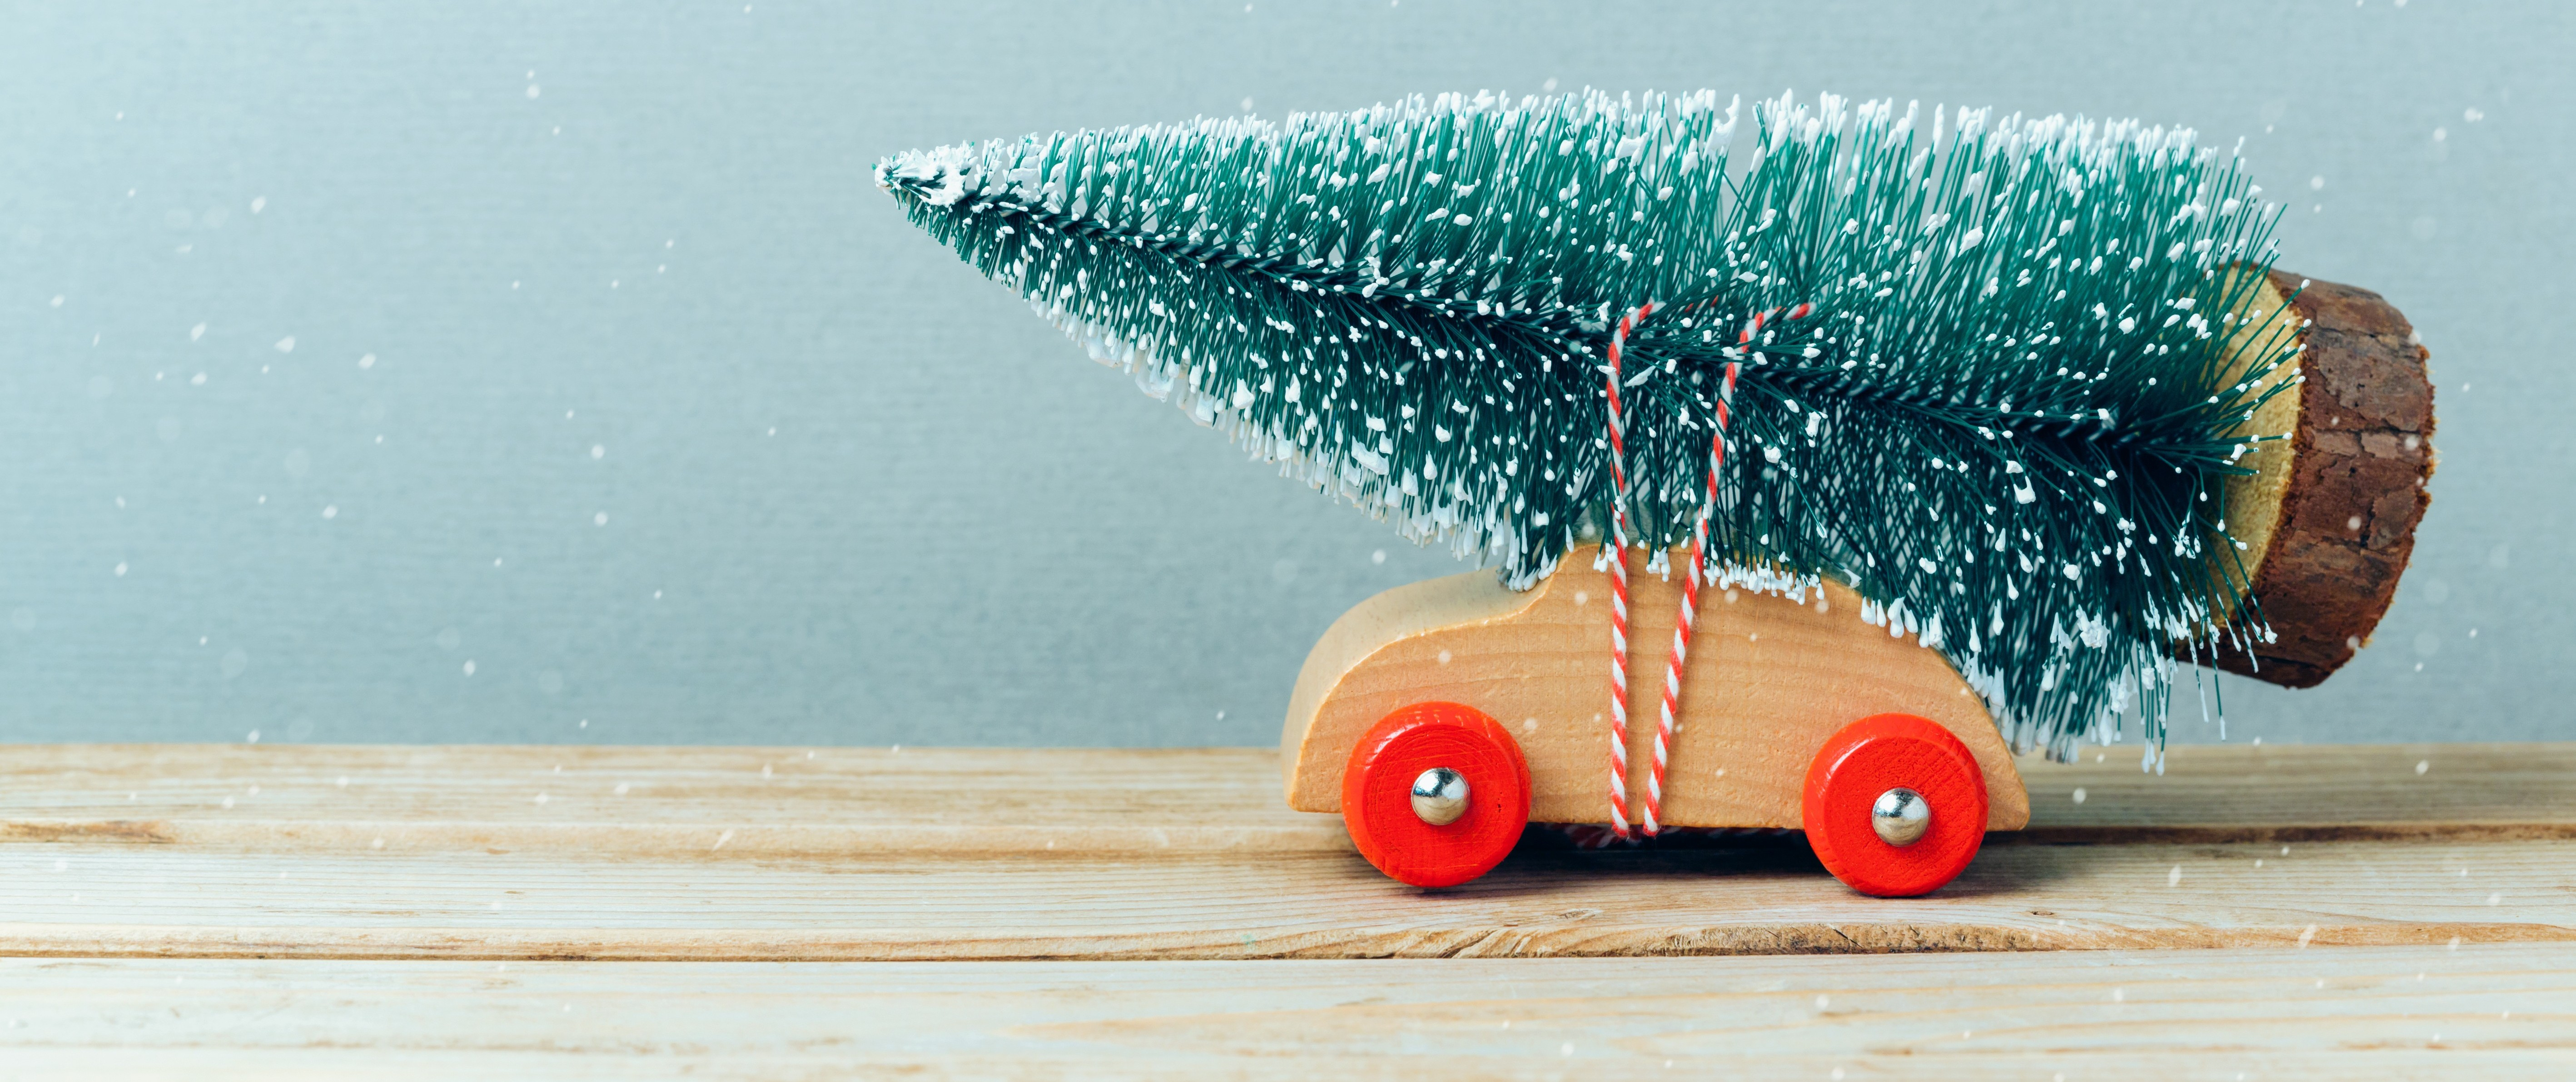 Christmas Tree on Car Toy